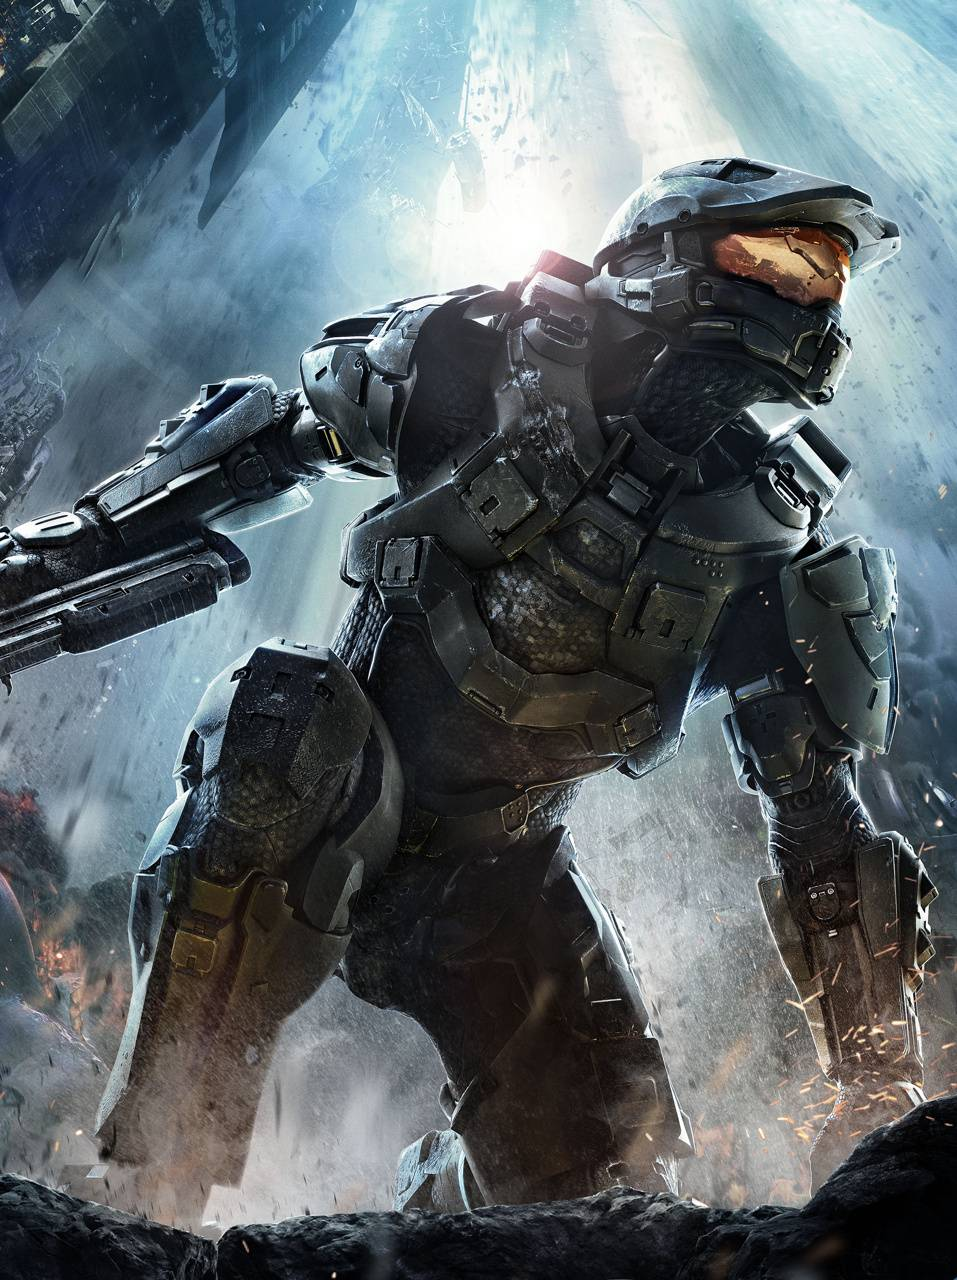 Halo 4 Wallpaper By Crazysquirrel1 45 Free On Zedge